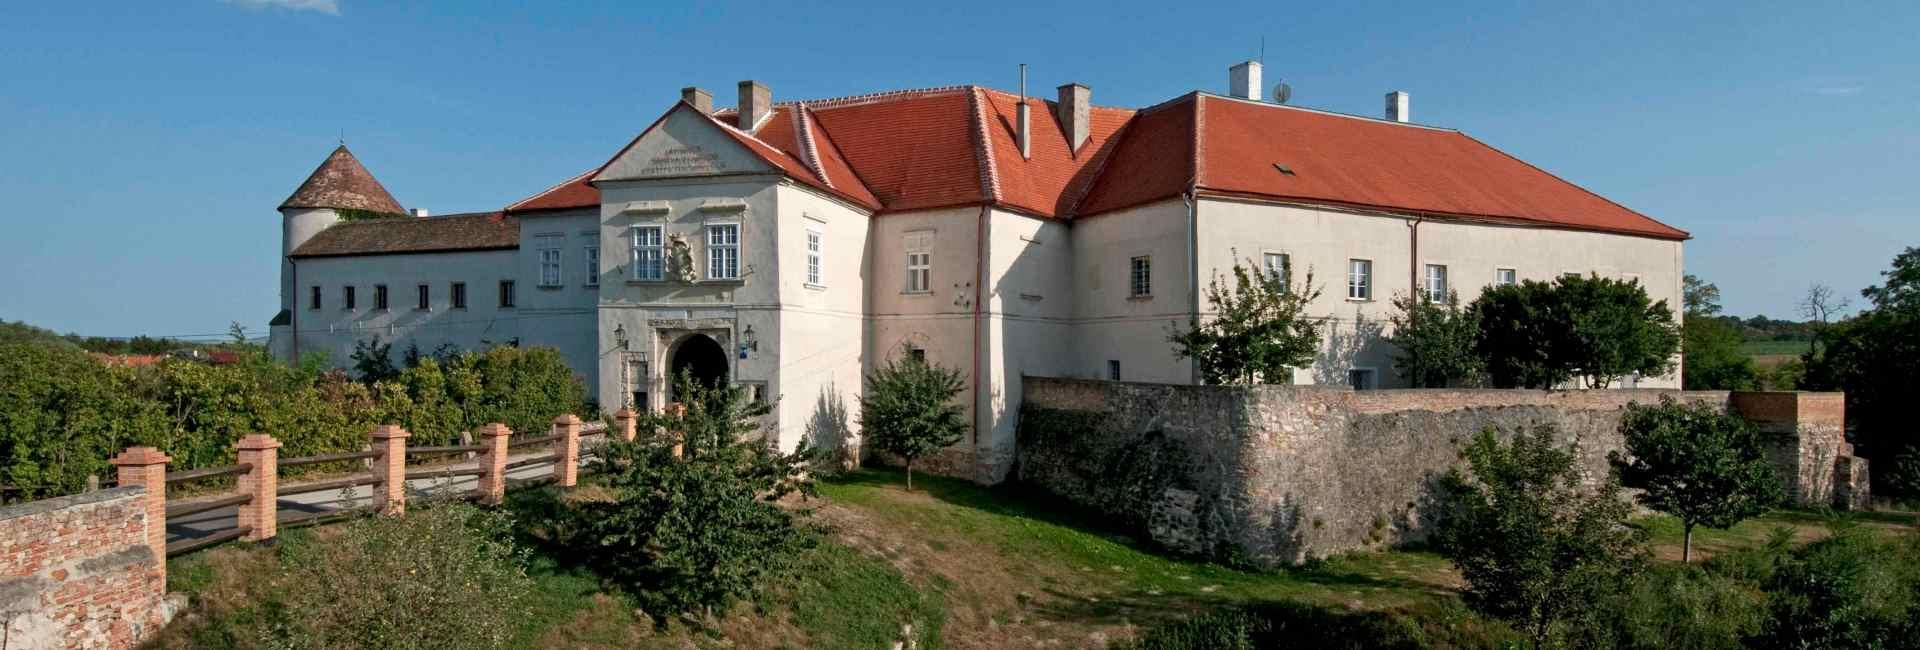 Castle Hotel Mailberg